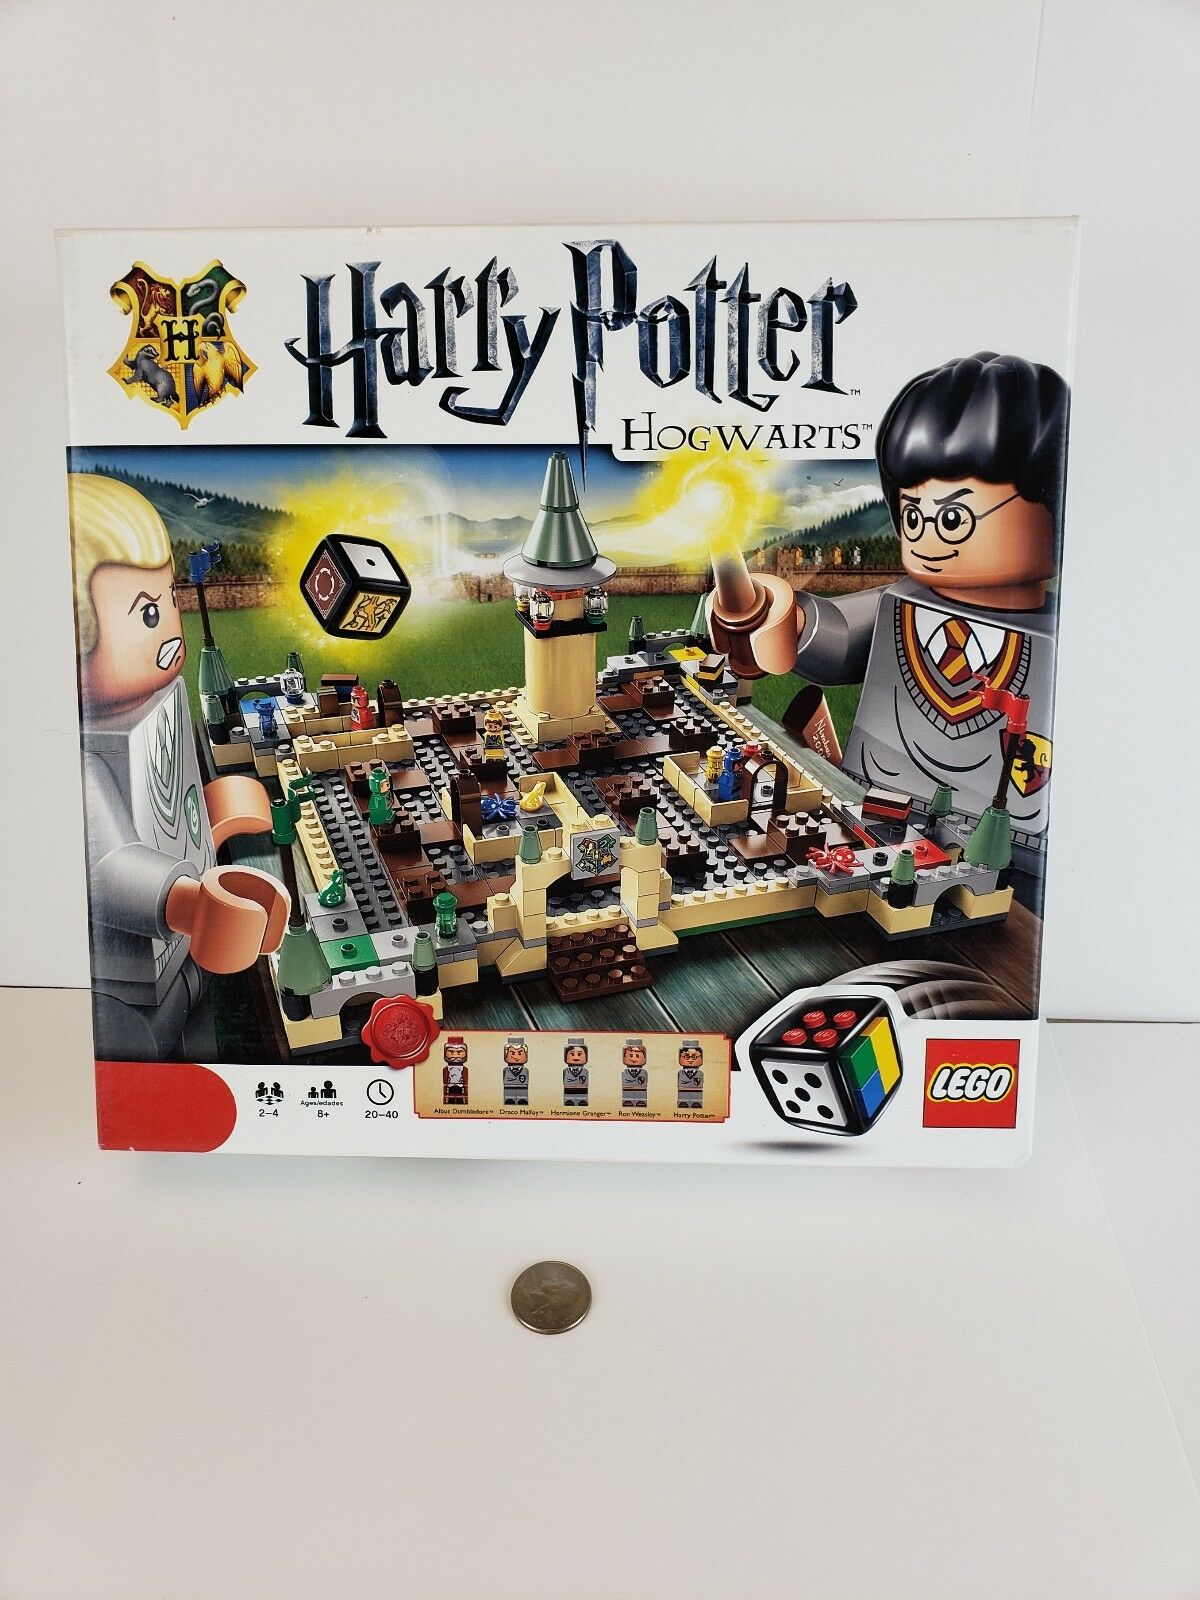 LEGO Harry Potter Hogwarts Game 3862 Great condition